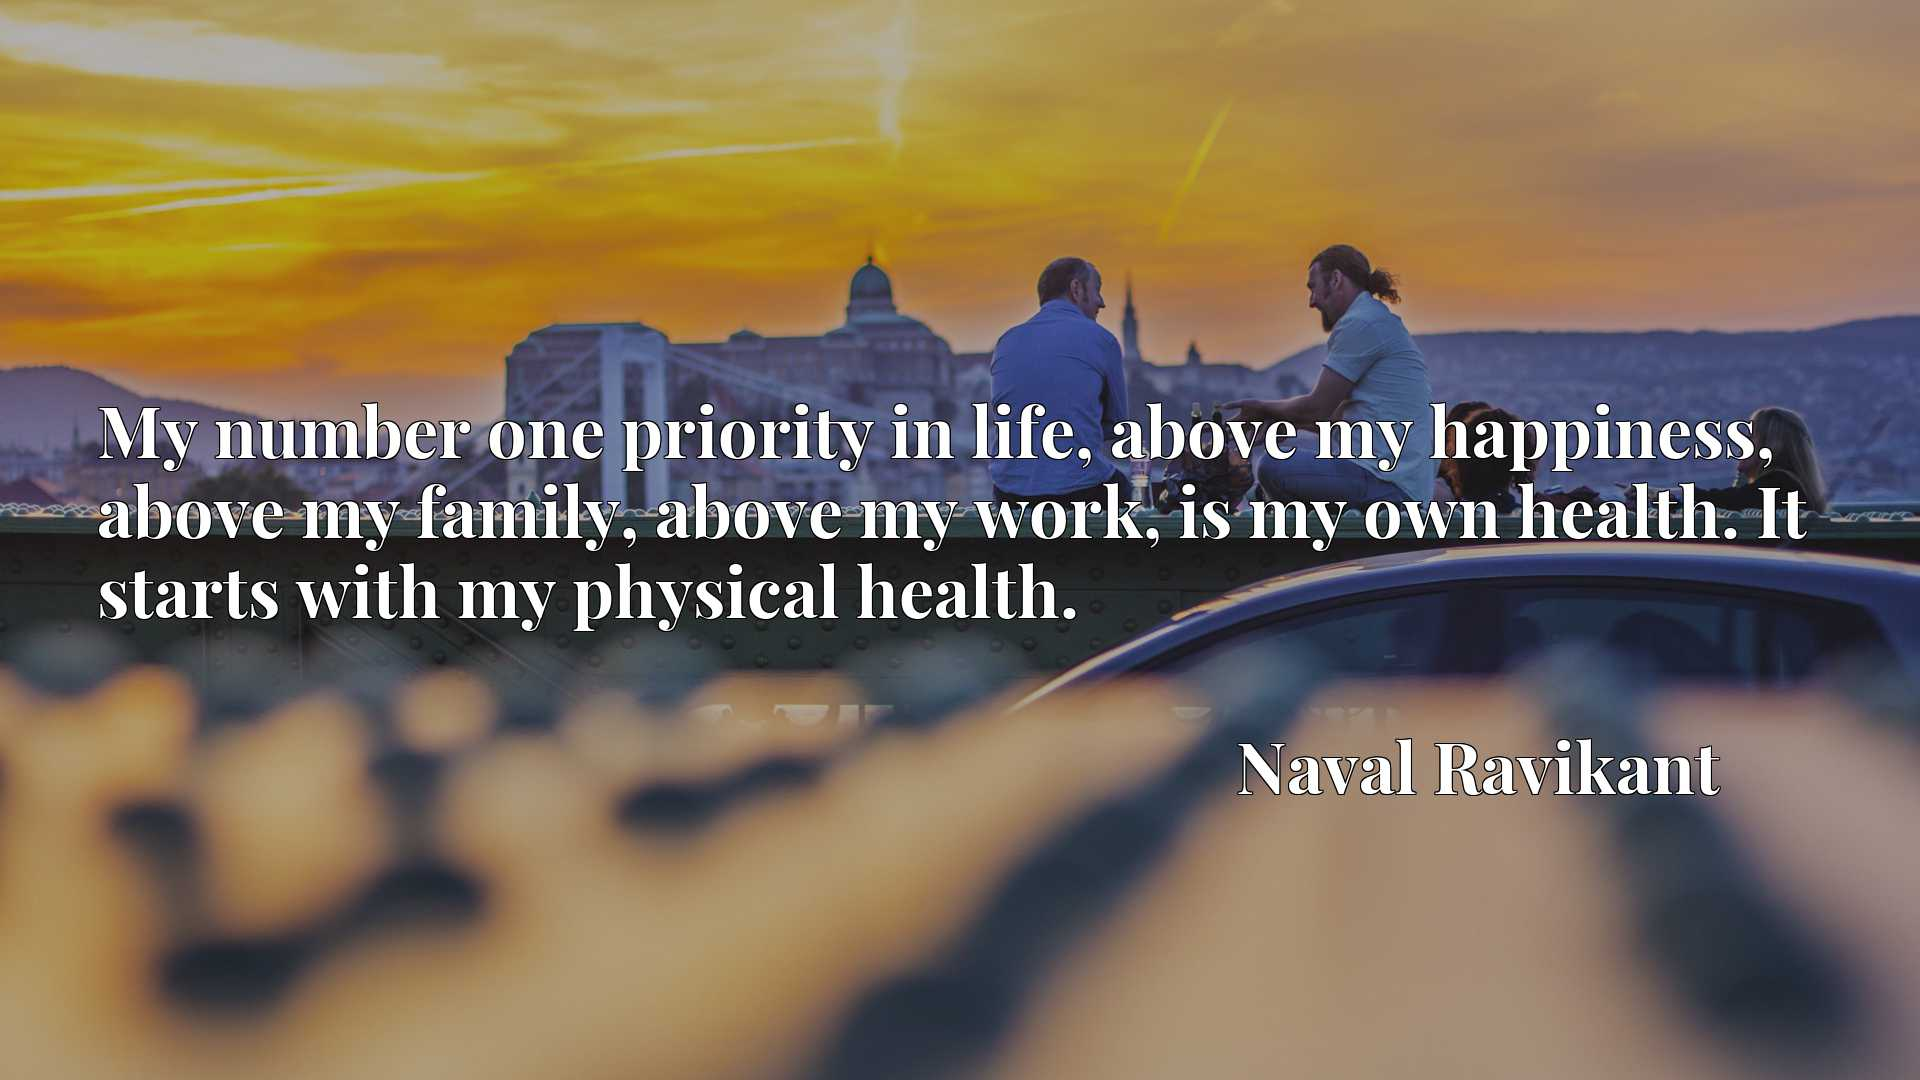 My number one priority in life, above my happiness, above my family, above my work, is my own health. It starts with my physical health.